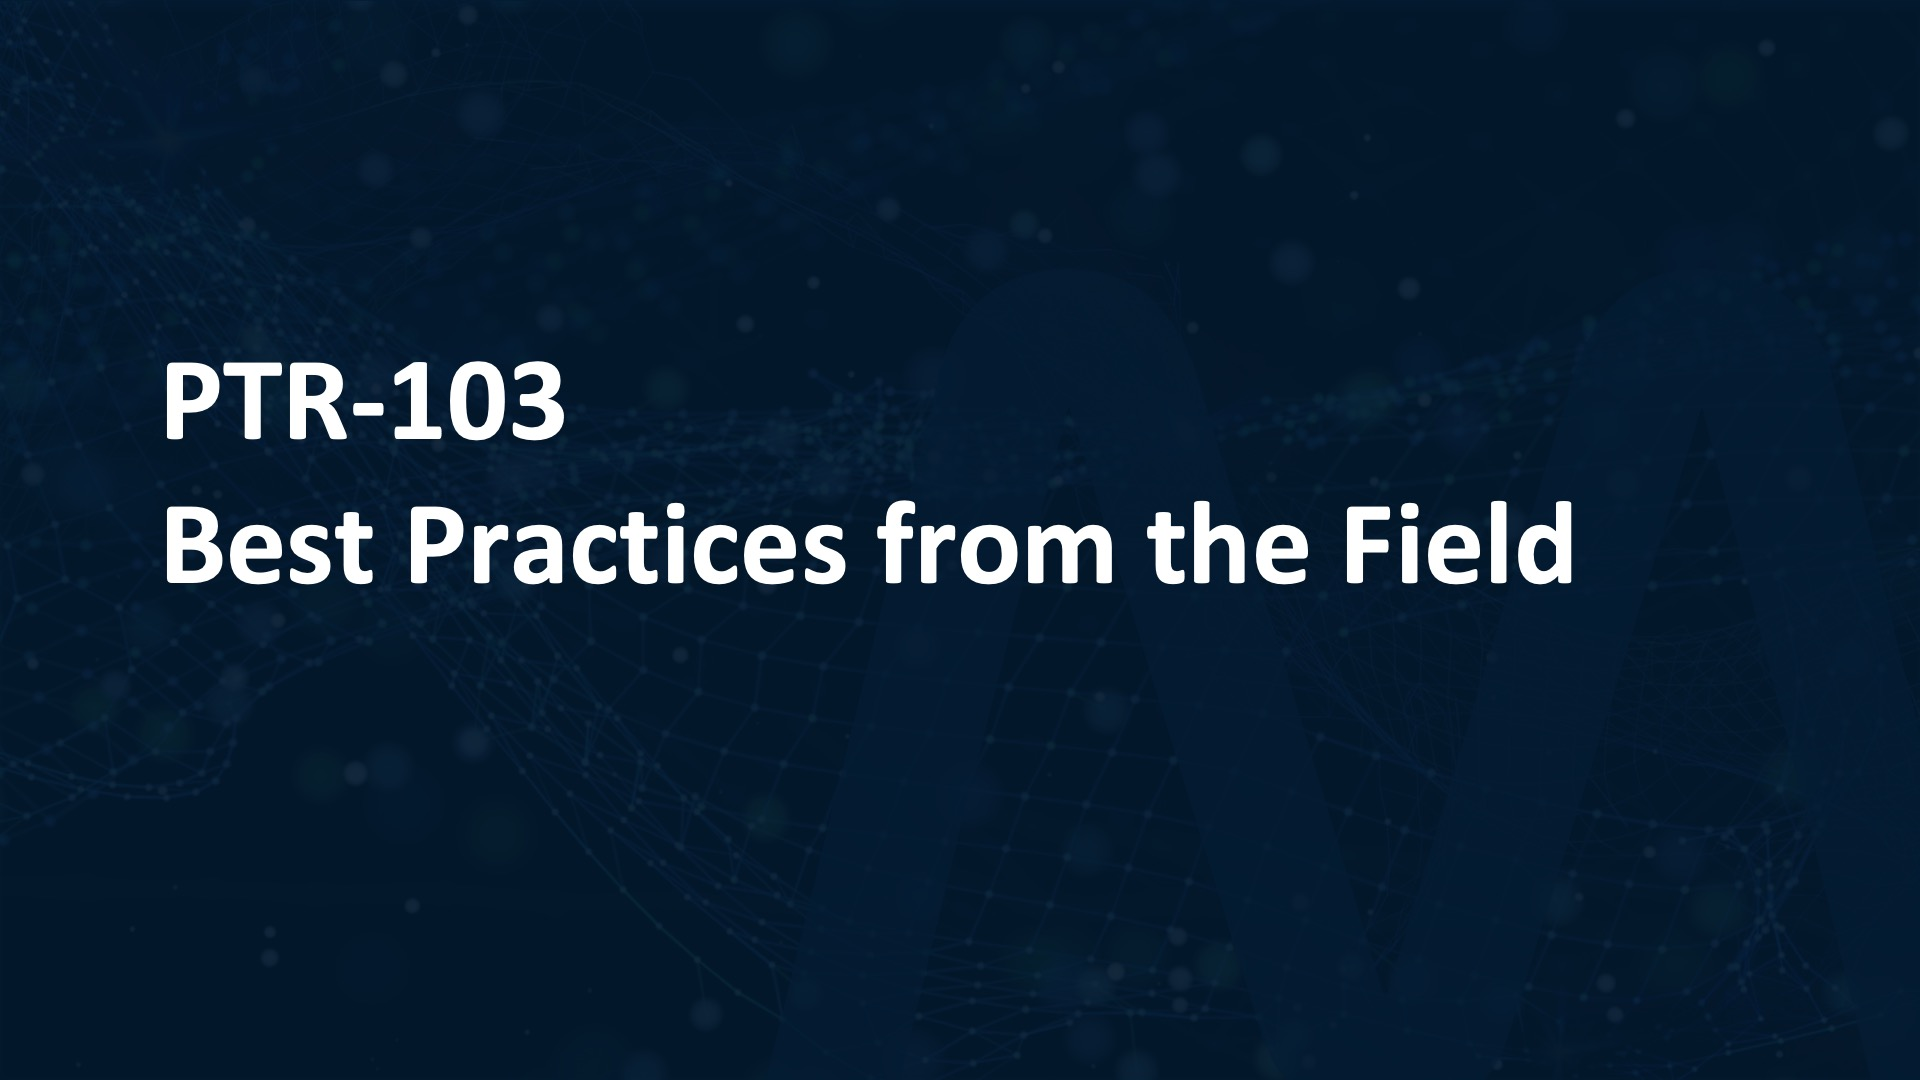 Best Practices from the Field